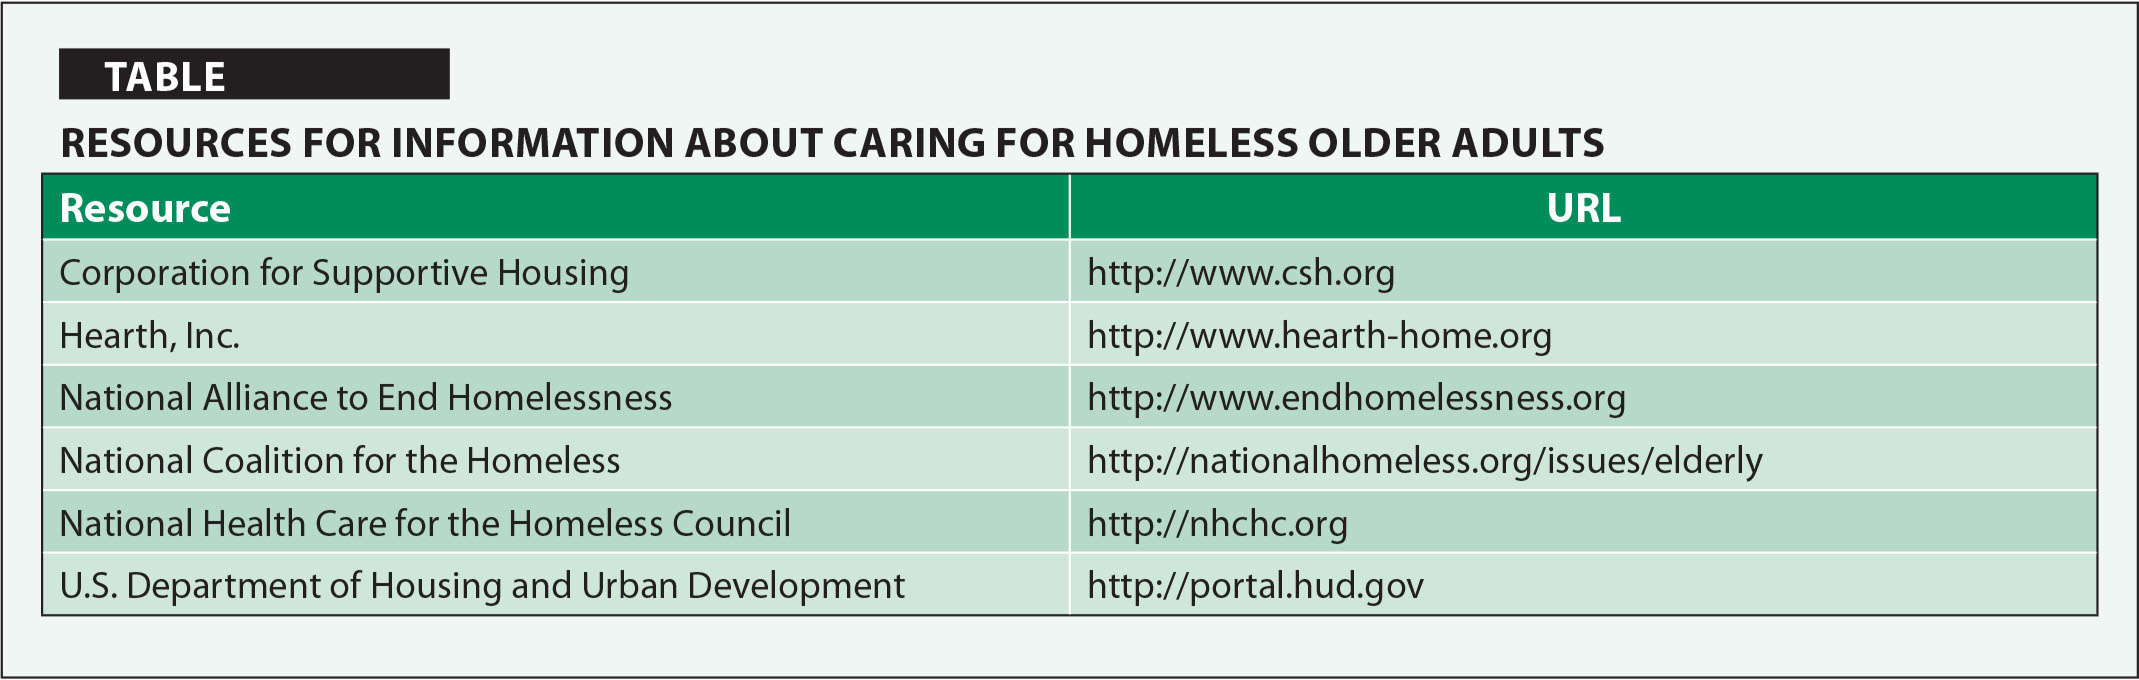 Resources for Information about Caring for Homeless Older Adults